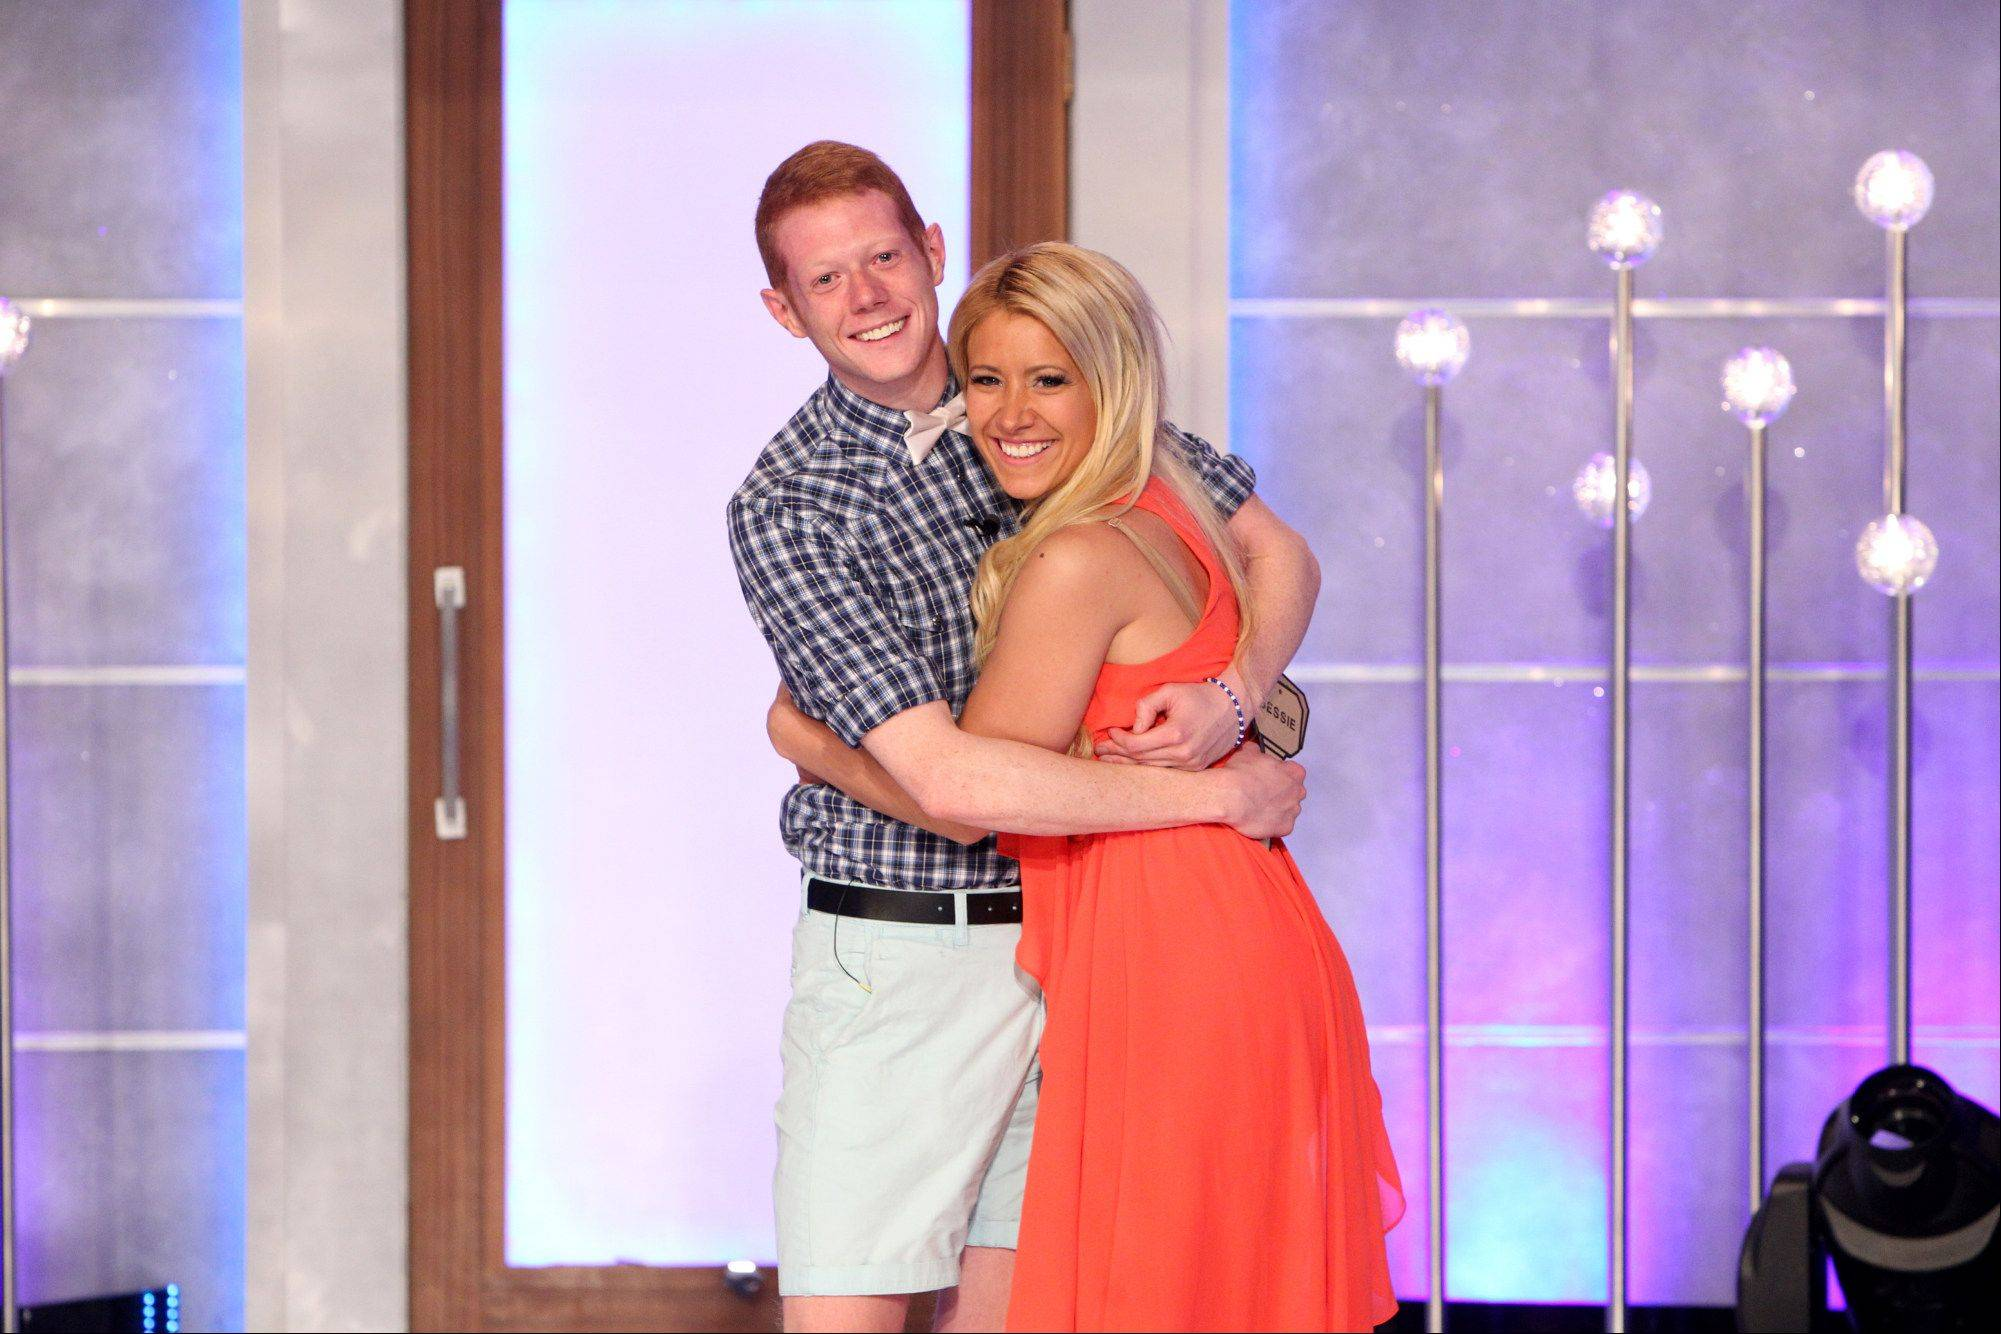 Big Brother Winner, Andy Herren and GinaMarie Zimmerman during the BIG BROTHER Finale Wednesday, September 18.